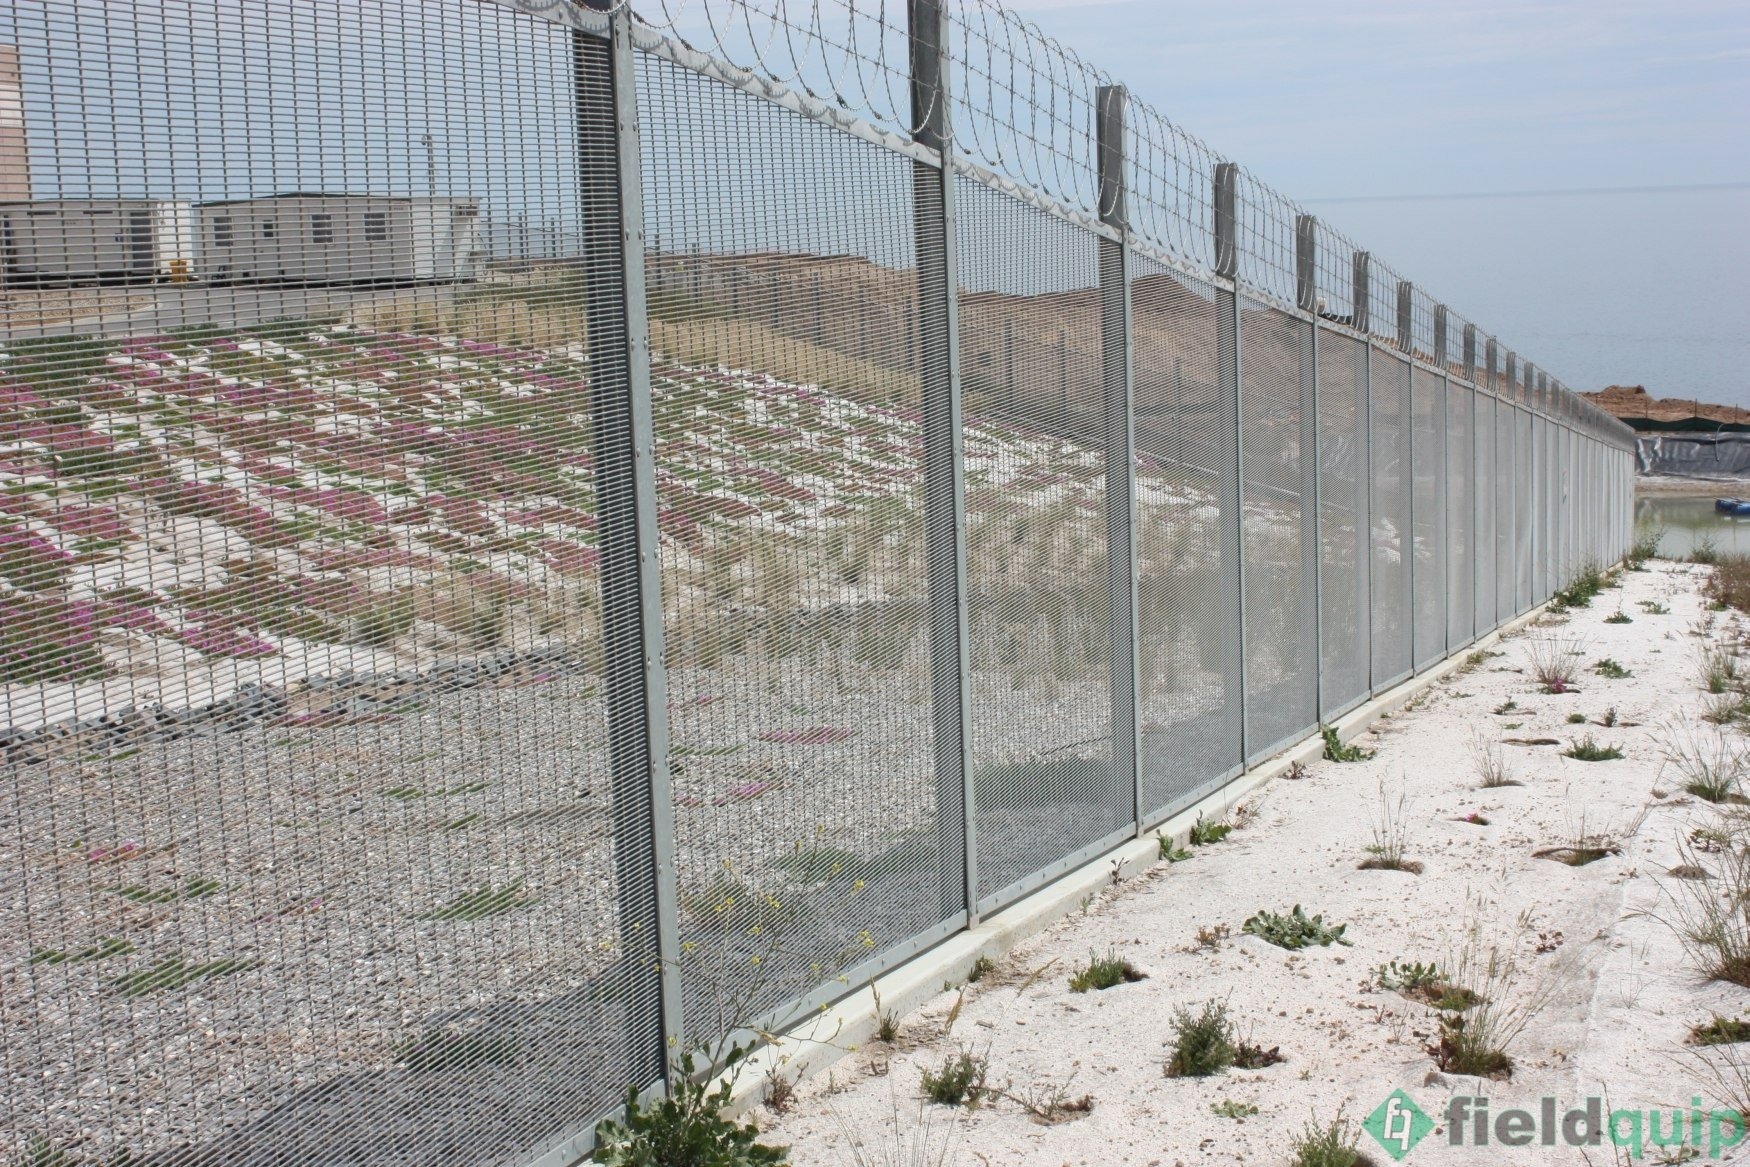 1. 358 mesh security fencing with barbed wire top. - Fieldquip